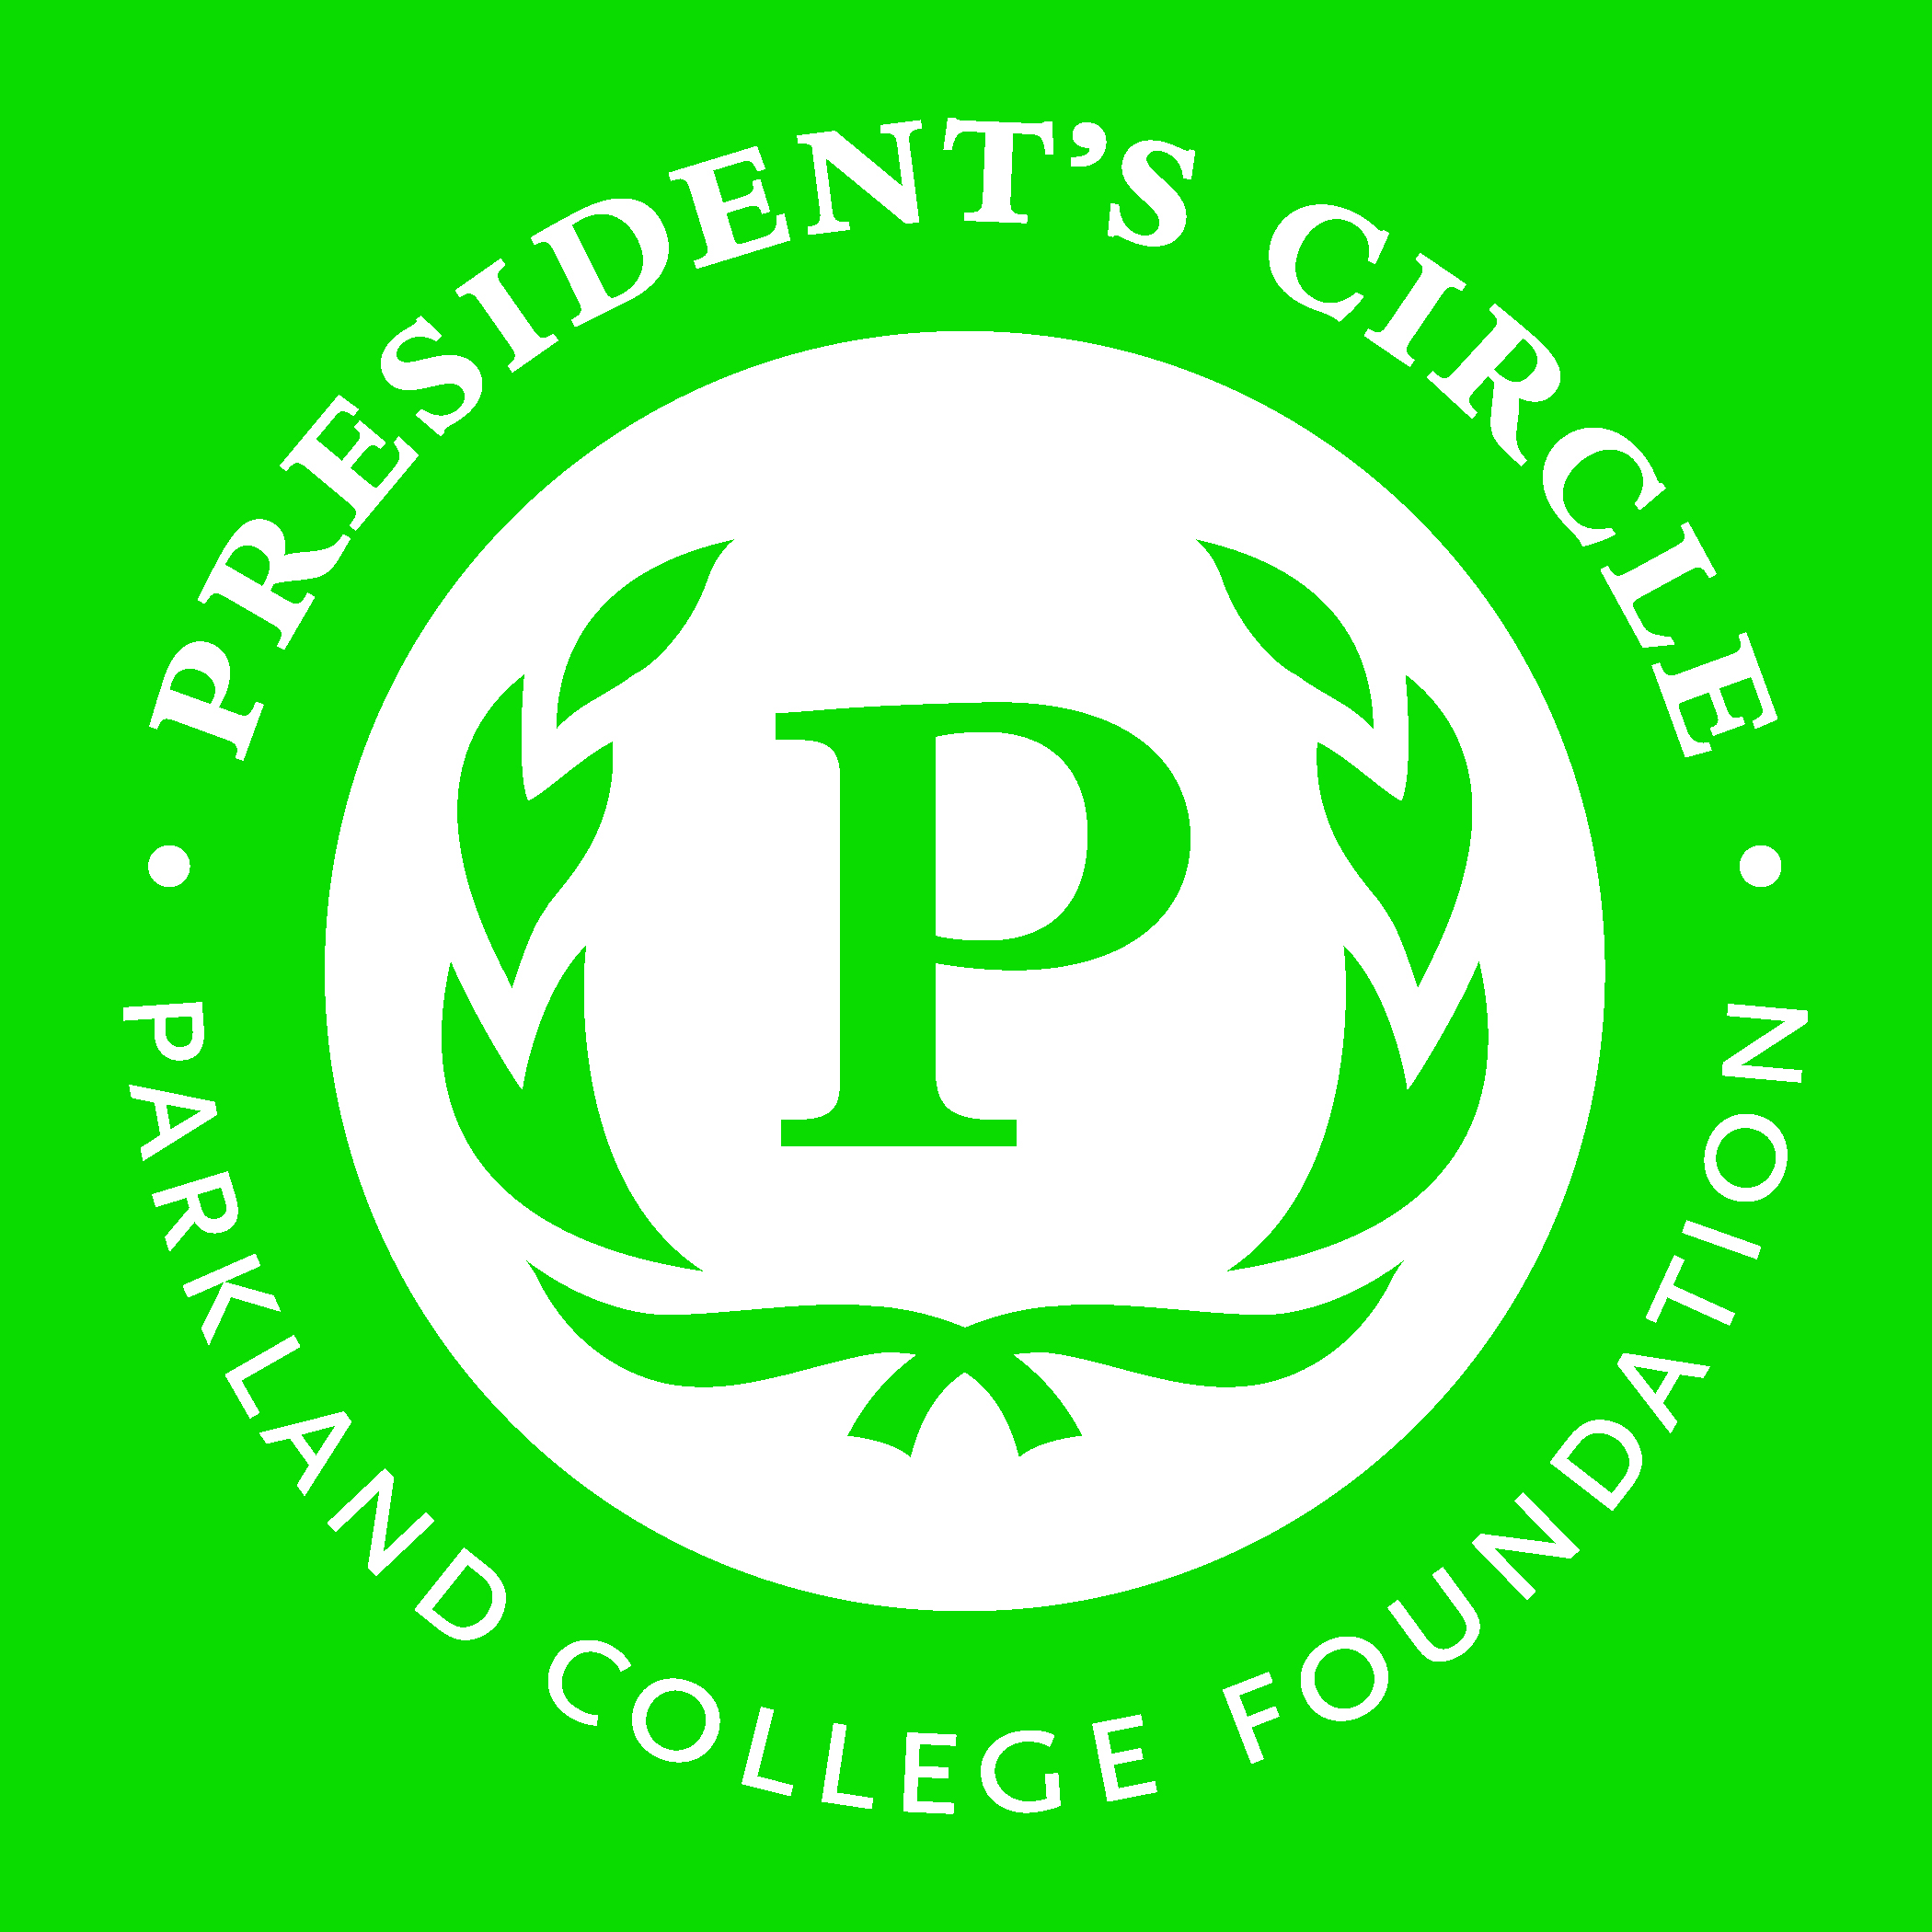 PC_presidents_seal-circle-white and green